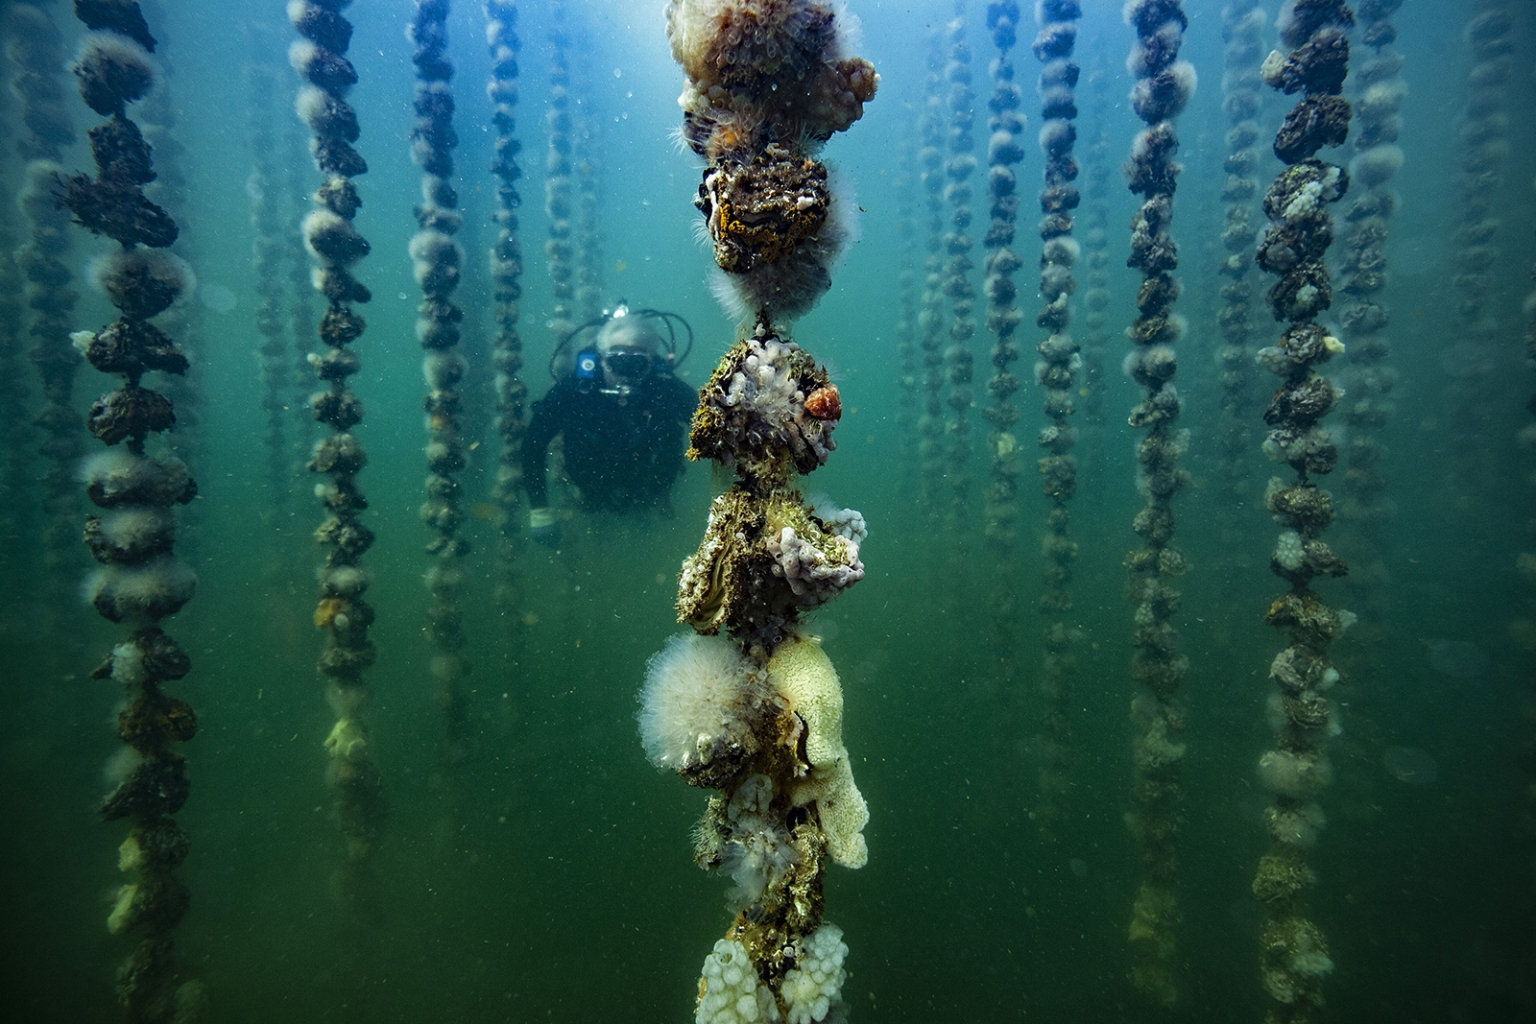 French oyster aquaculturist Jean-Christophe Cabrol checks the growth of oysters on collector lines at a shellfish farminBouzigues, near Montpellier, France on July 2. BORIS HORVAT/AFP/Getty Images